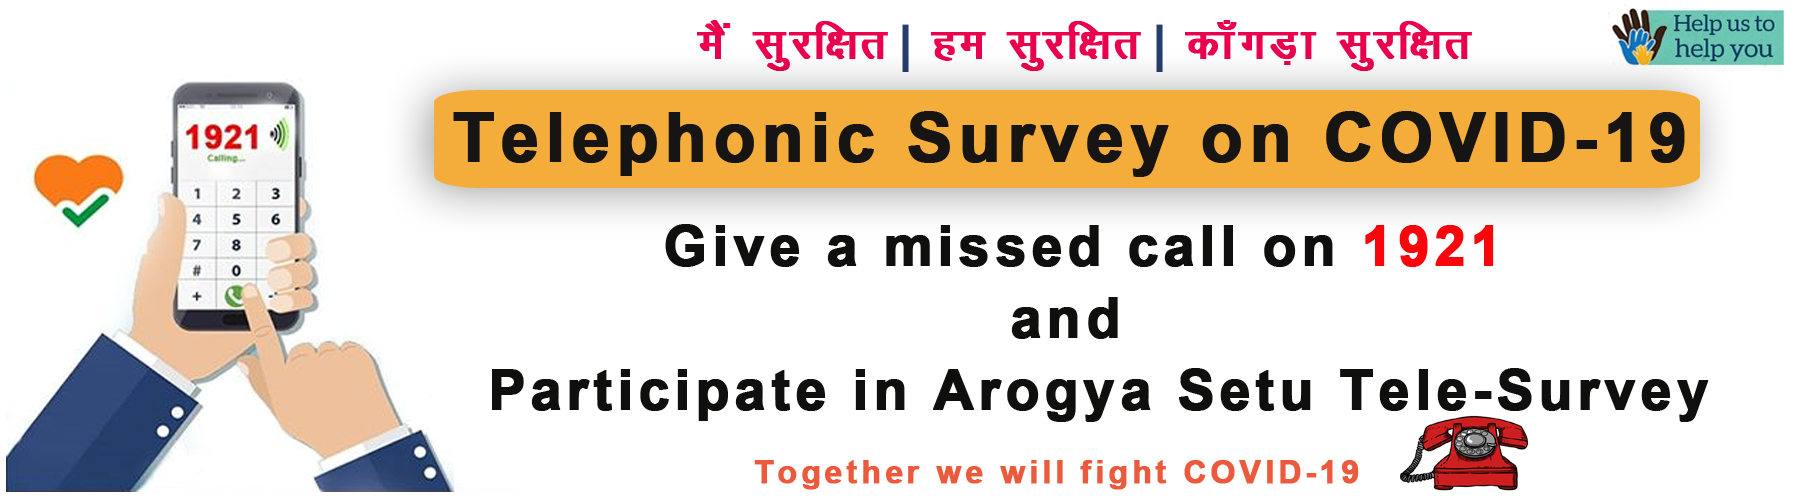 Participate in Telephonic Survey on Covid 19, Give a missed call on 1921.